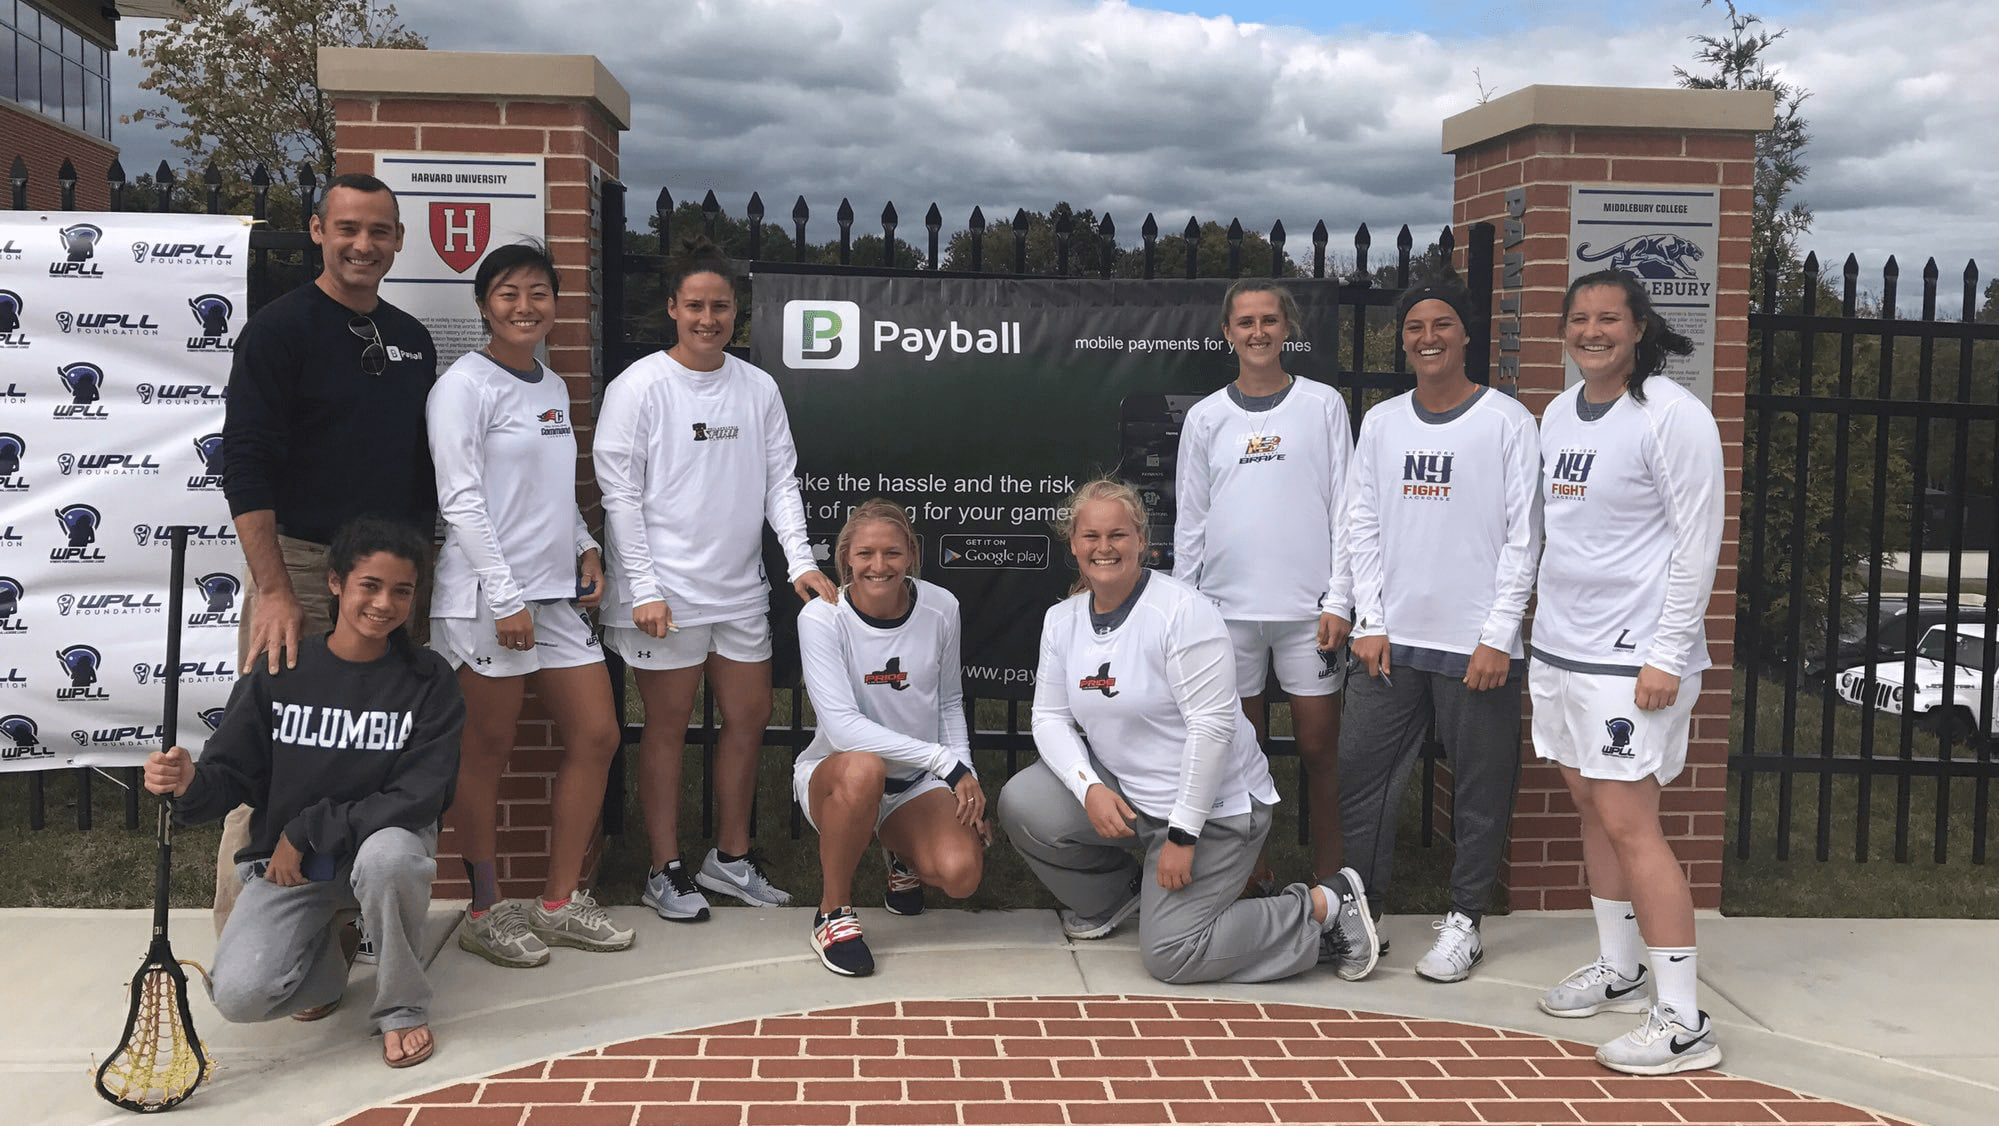 Payball, WPLL Join Together for 2018 Season